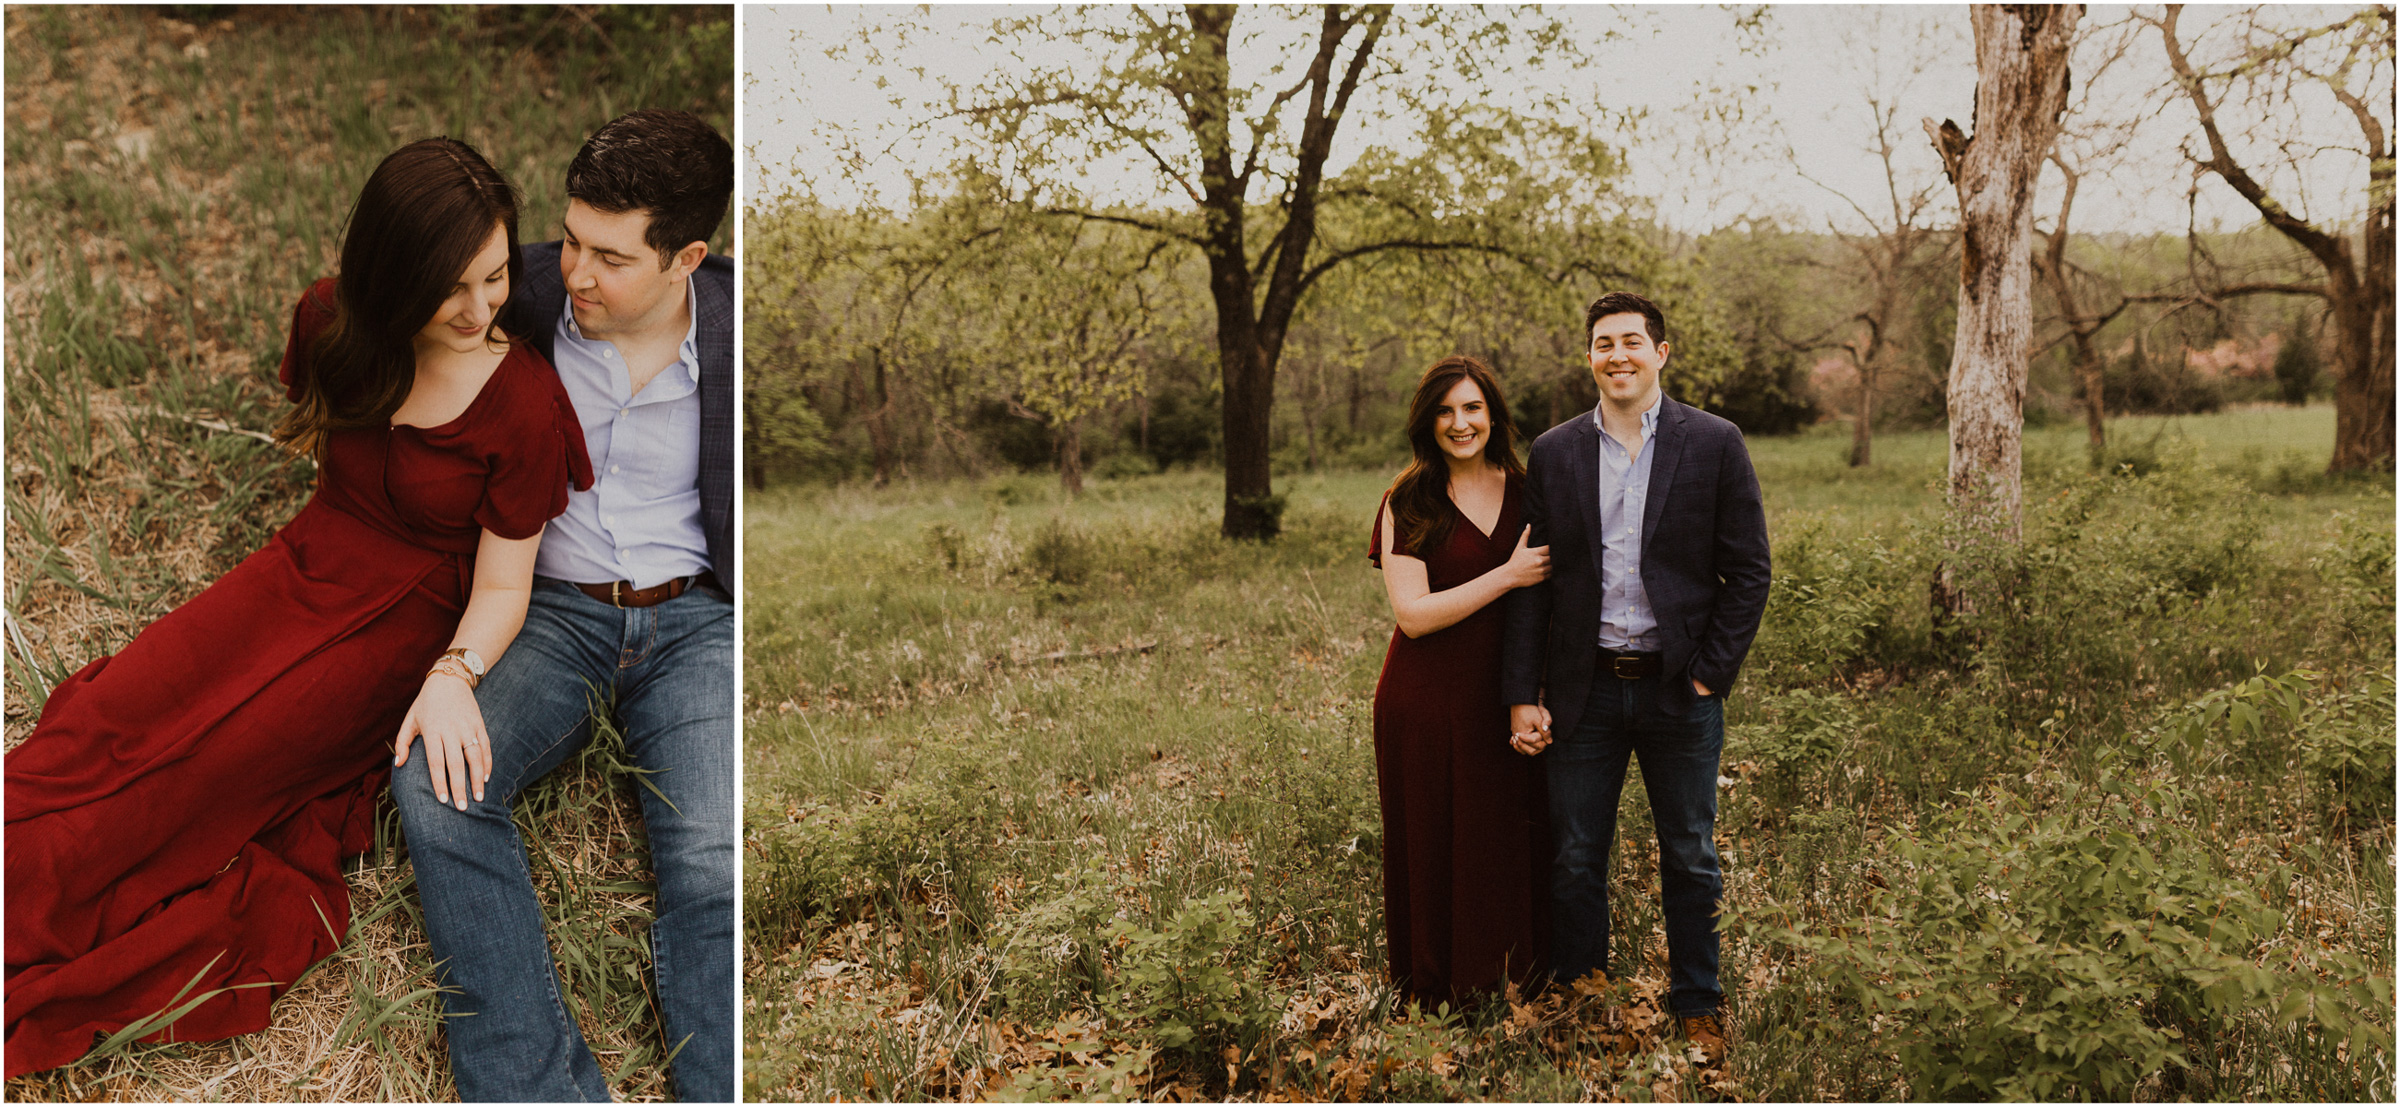 alyssa barletter photography shawnee mission park engagement session photographer spring fields-8.jpg